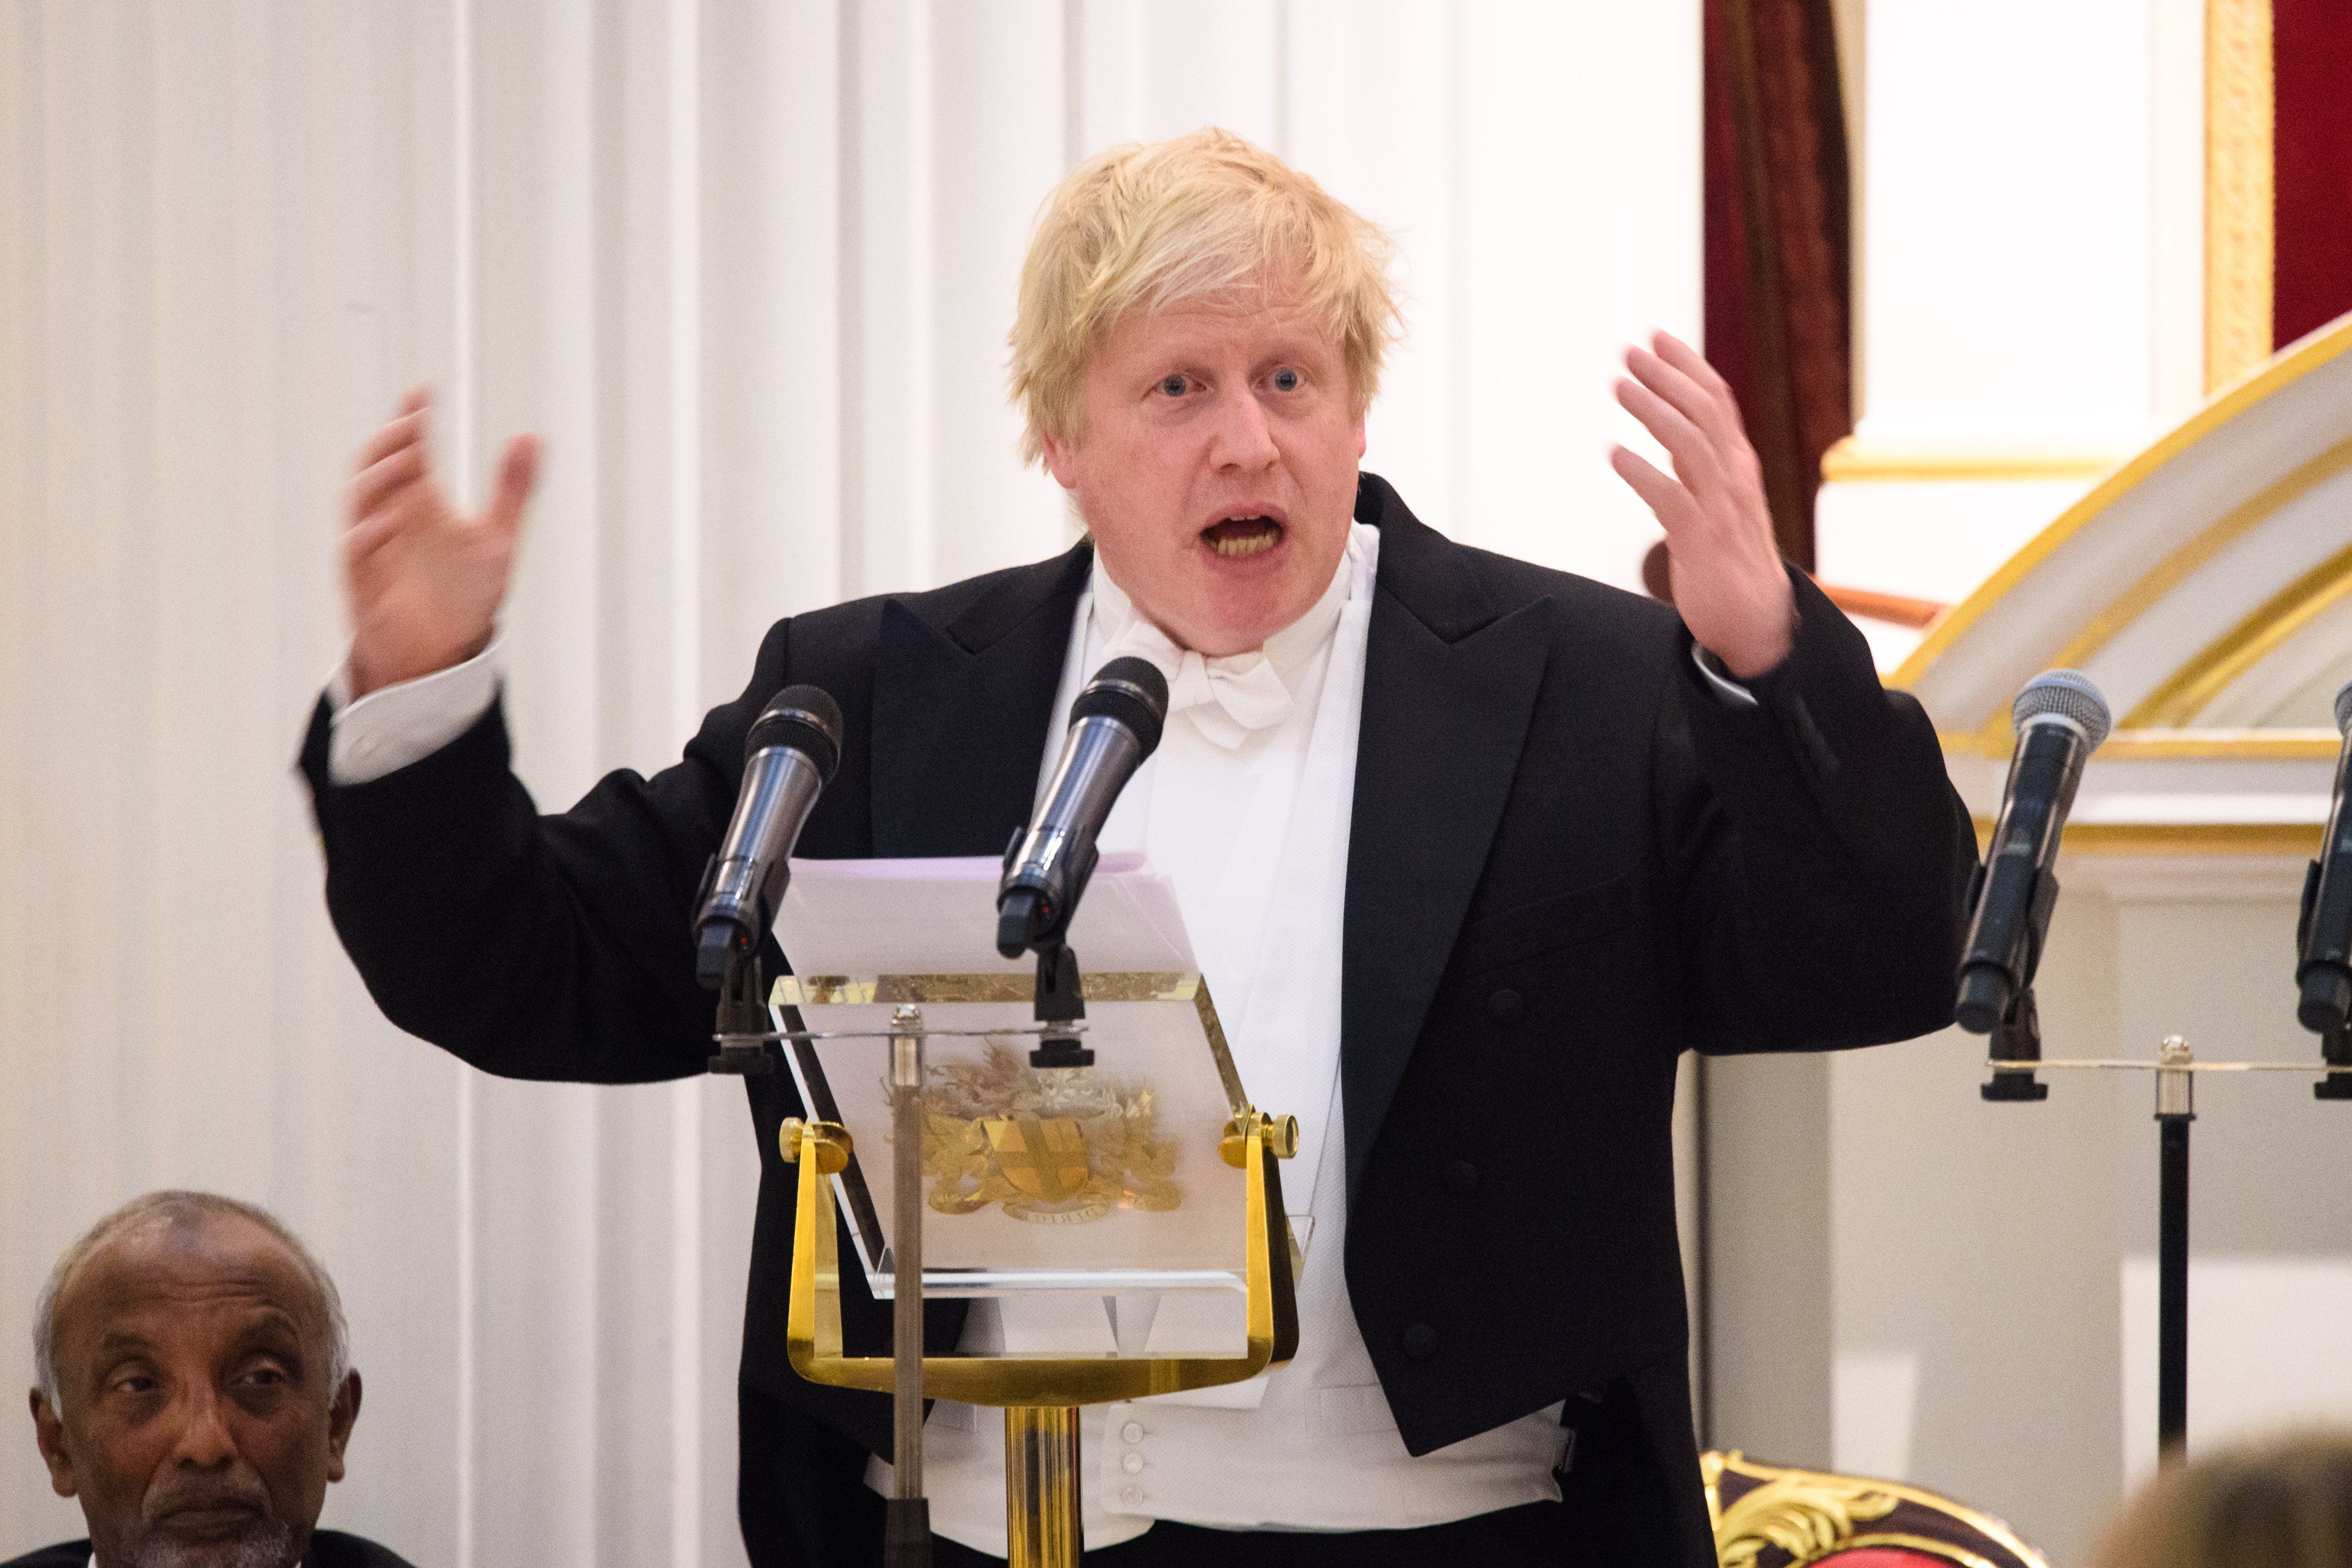 Boris Johnson was paid almost £95,000 for a single speech this